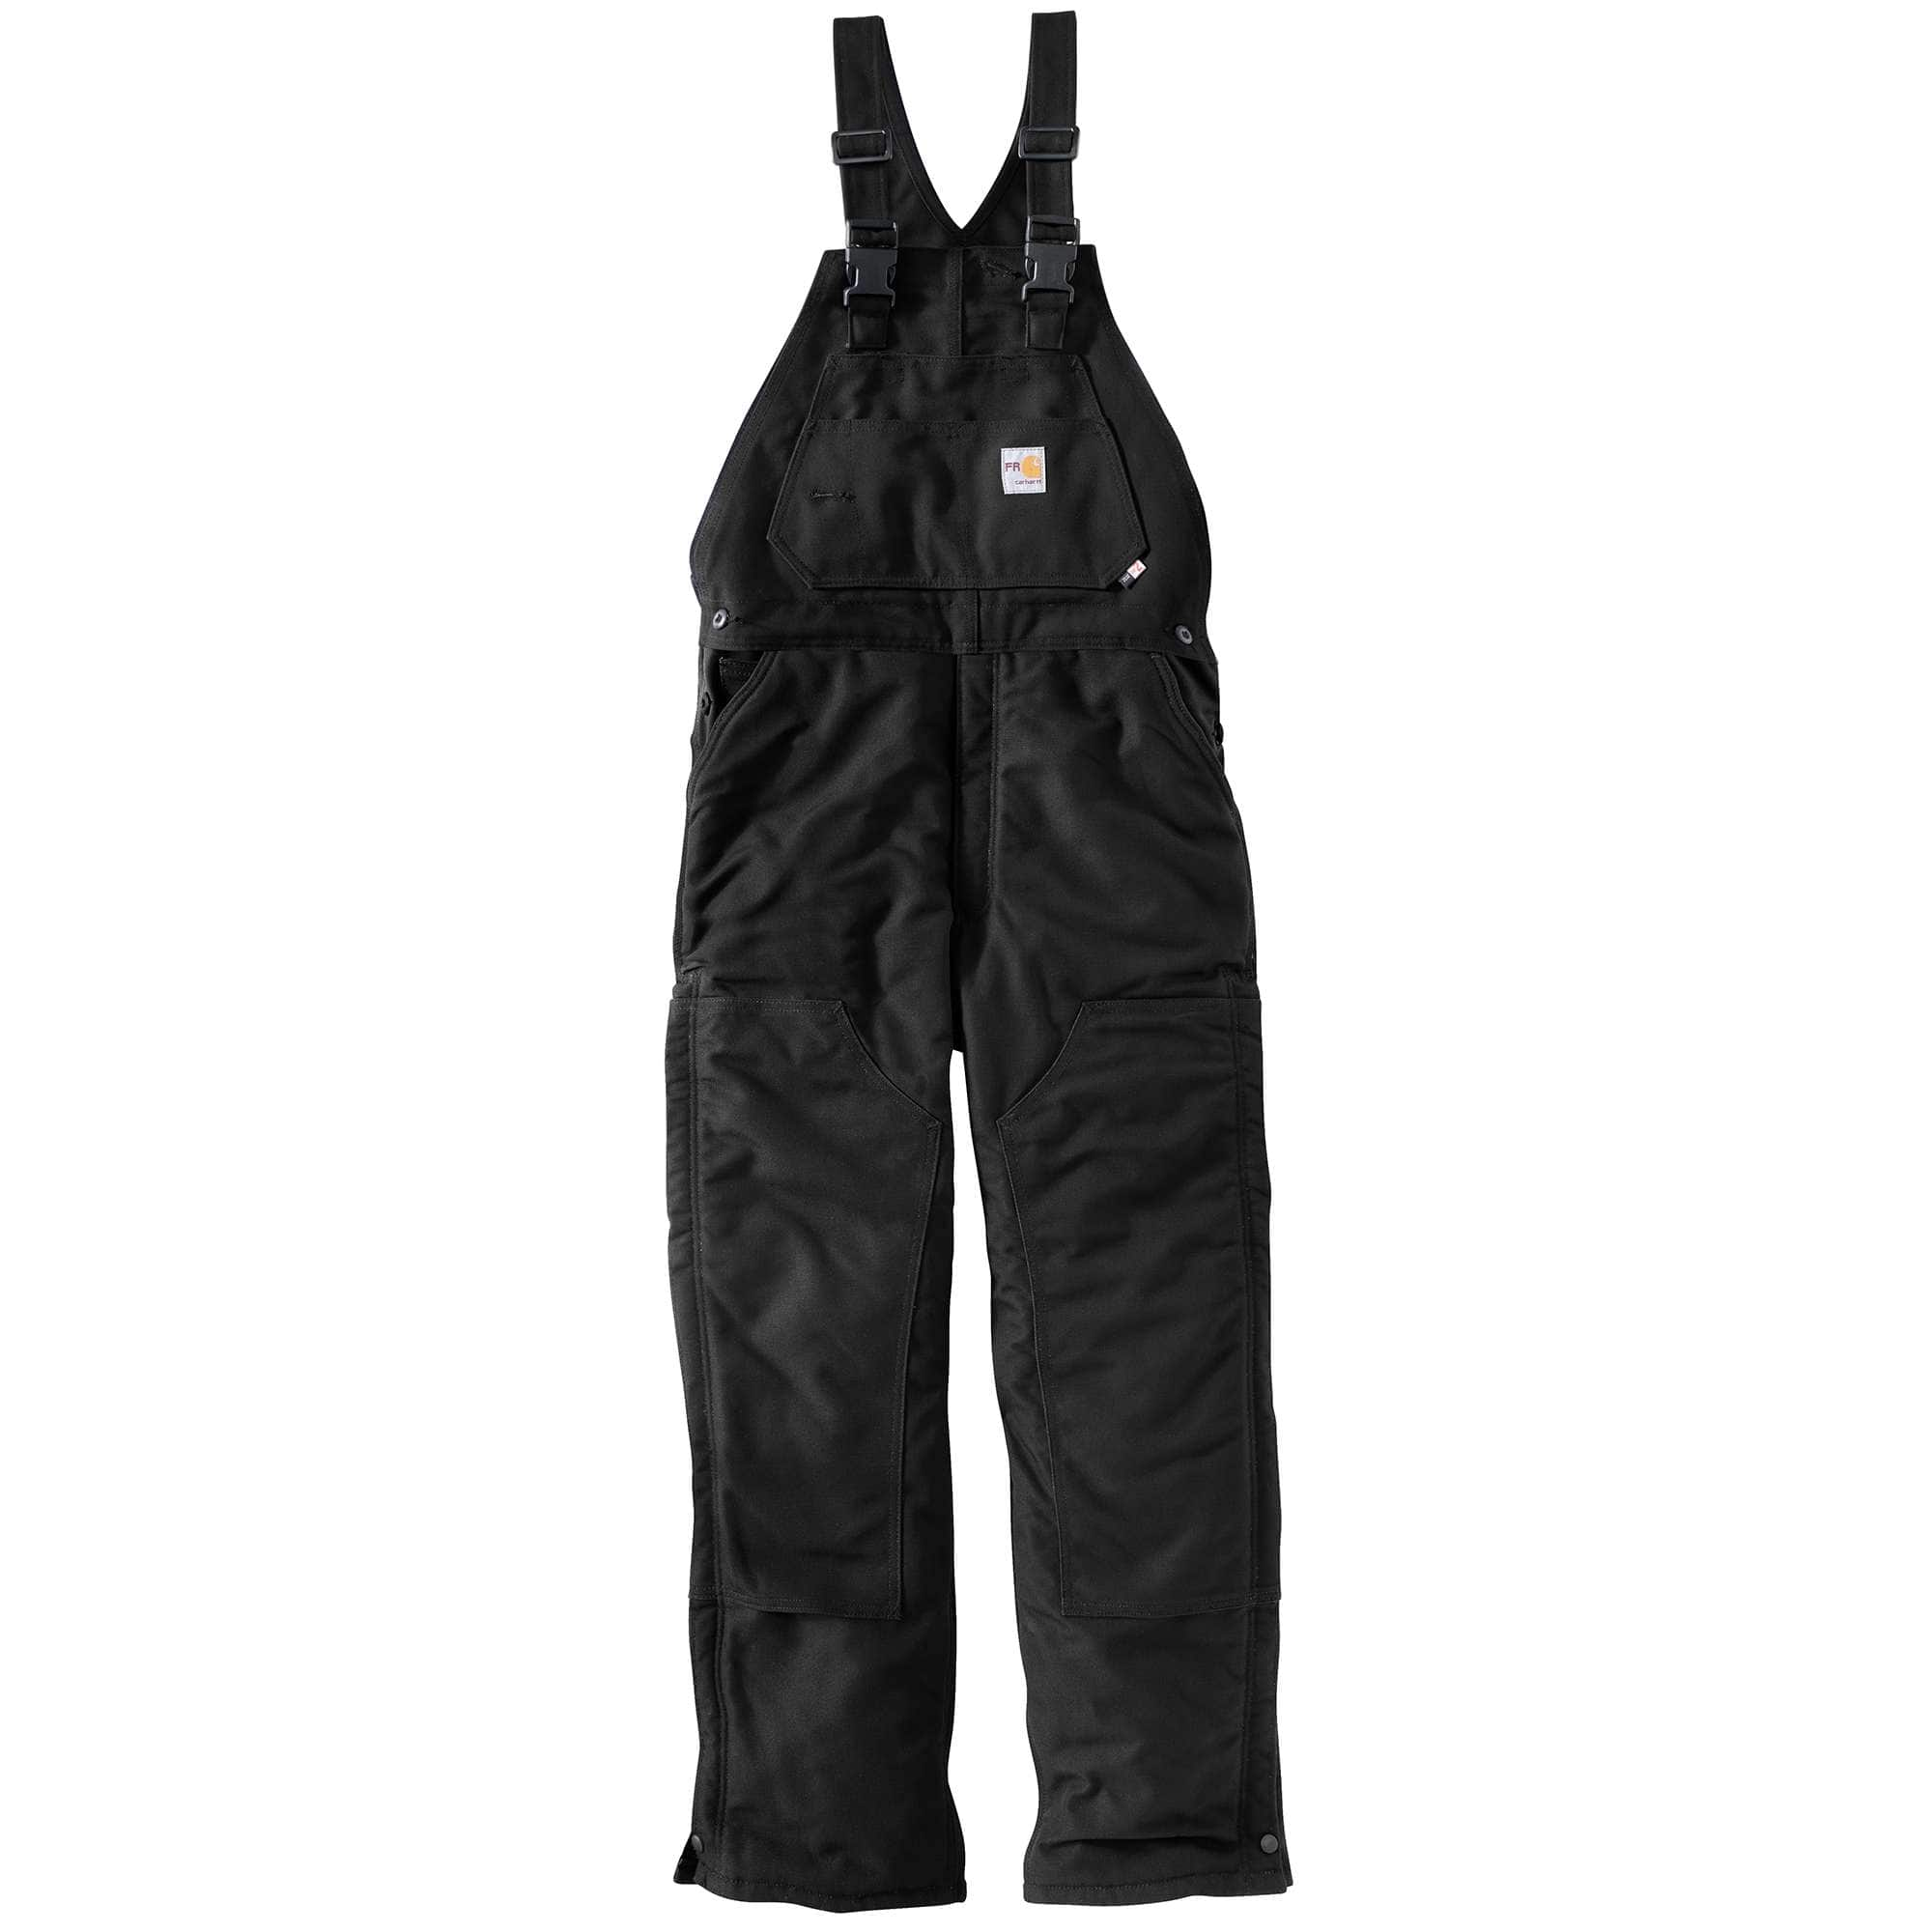 51b2b55b38e2 Men s Flame-Resistant Duck Bib Overall Unlined 101627